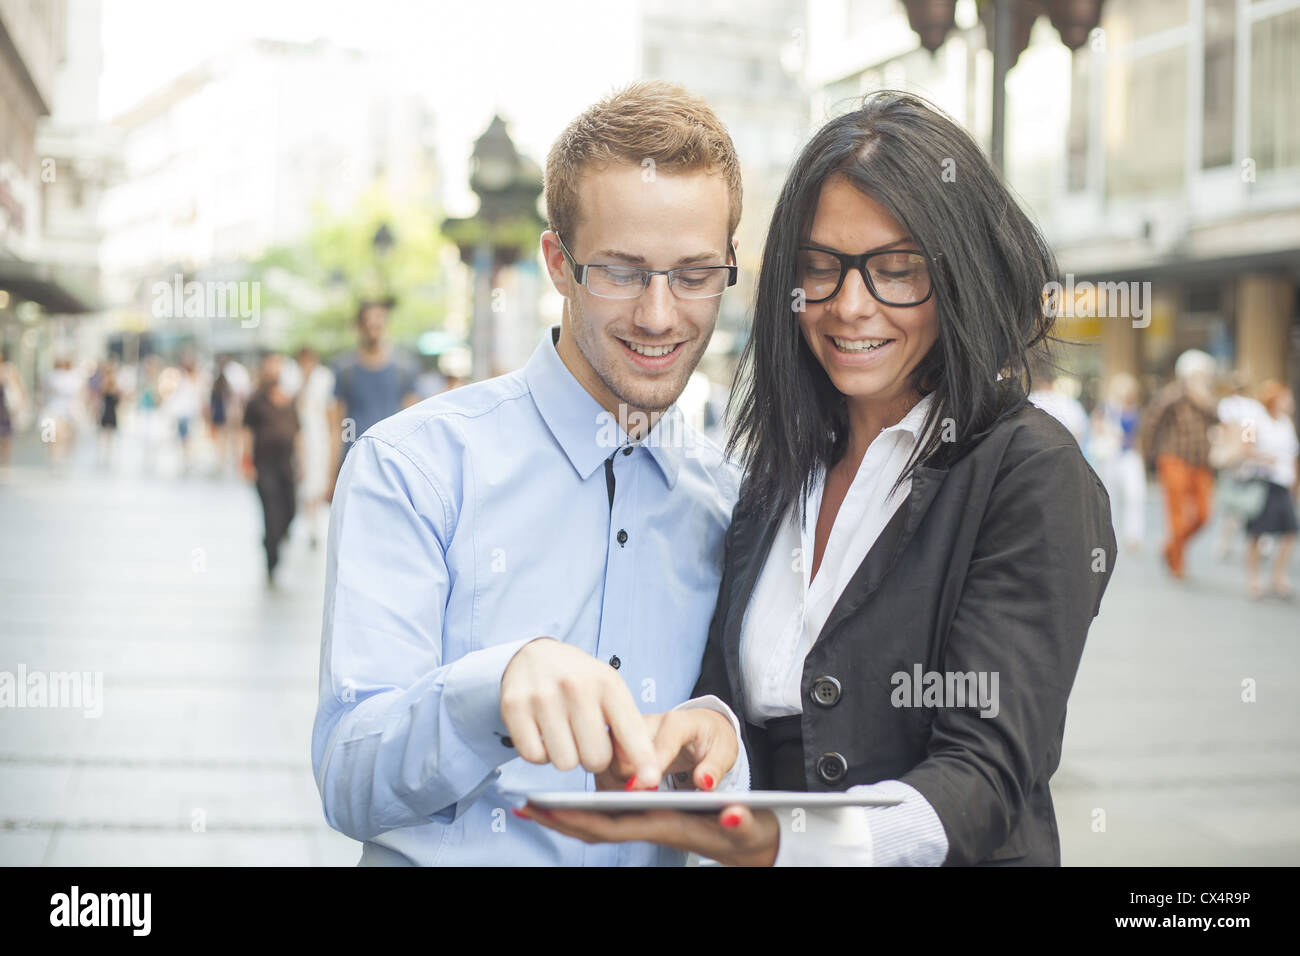 Two businesspeople on street with tablet computer - Stock Image